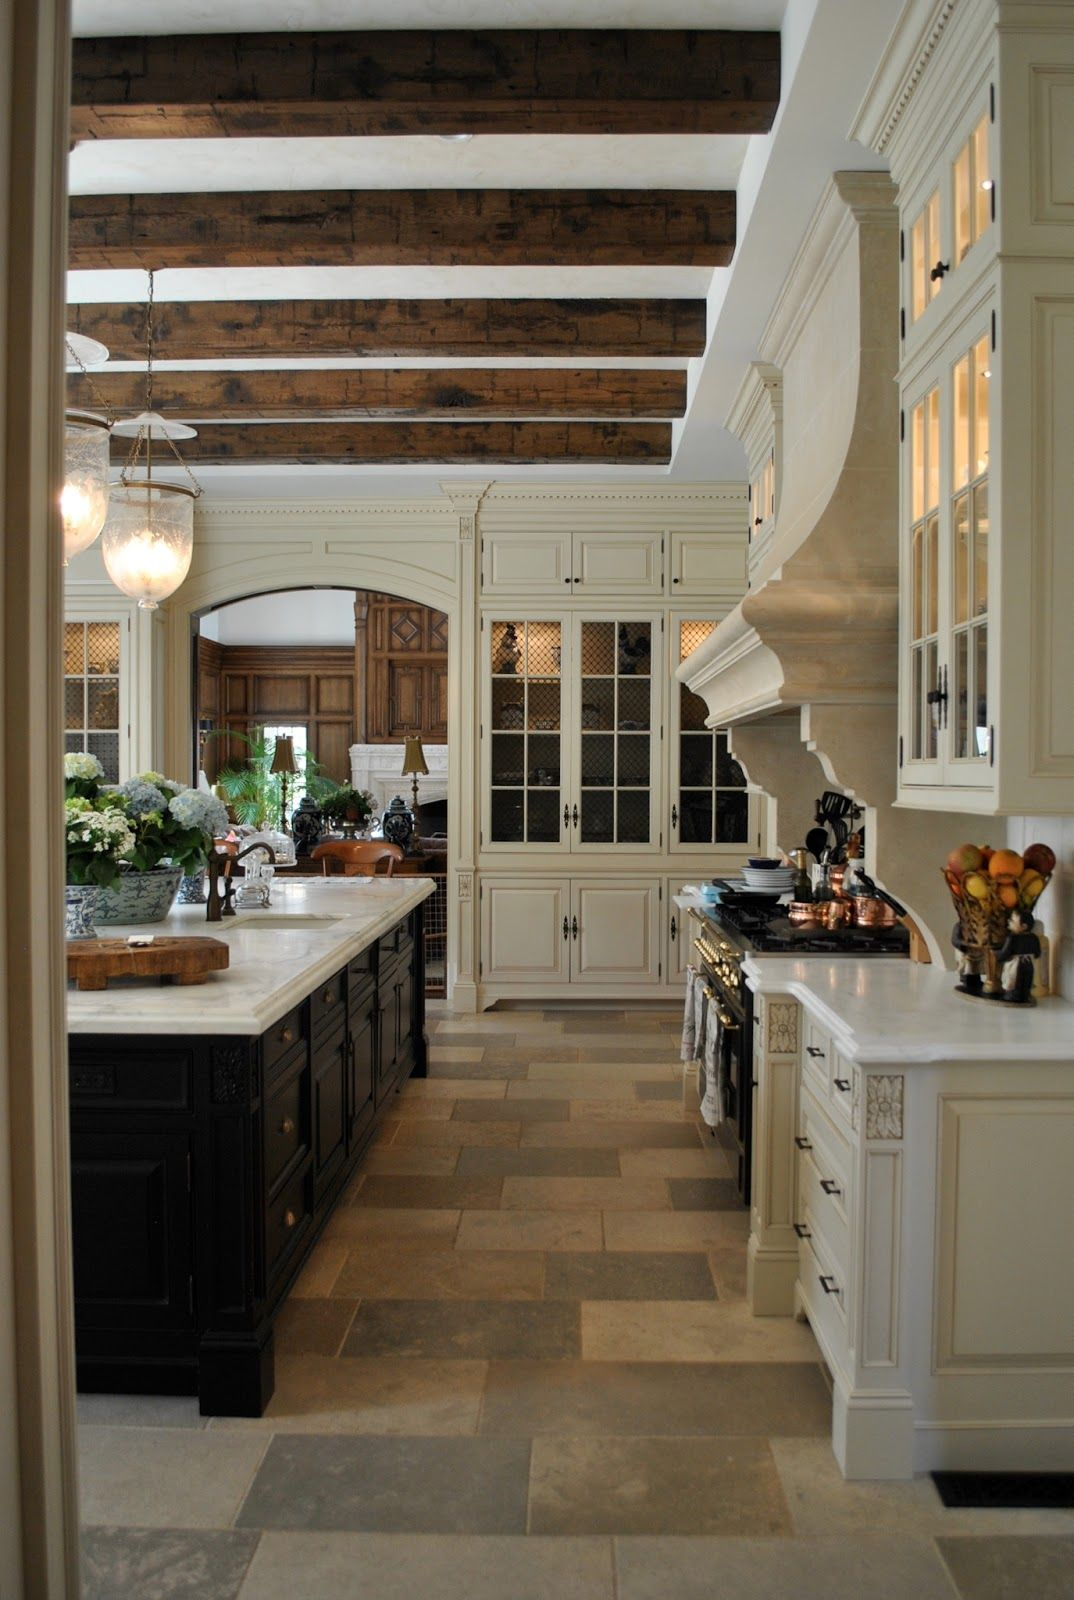 Good Morning Hope You Have Enjoyed My Series Bloggers Beautiful Abodes I Kno French Country Decorating Kitchen French Country Kitchens French Country Kitchen Paris themed kitchen ideas